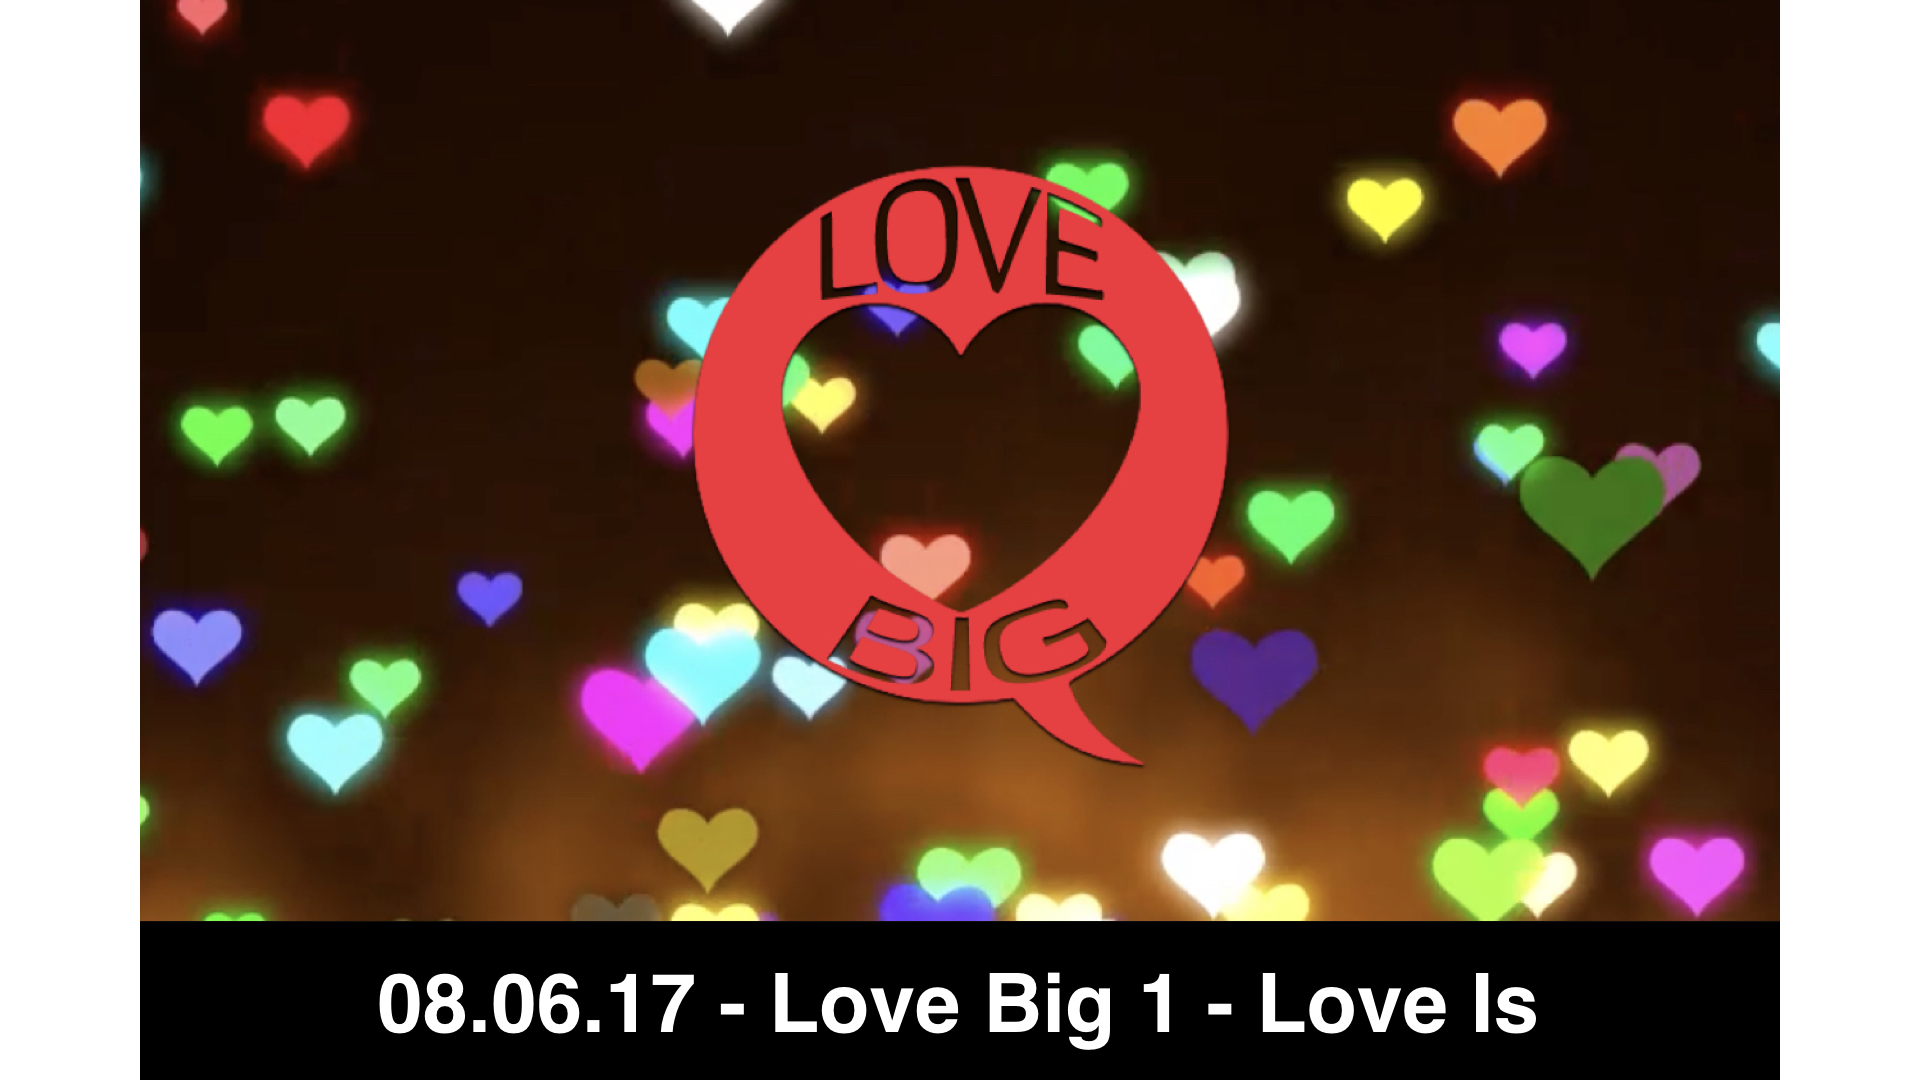 08.06.17 Love Big 1 - Love Is